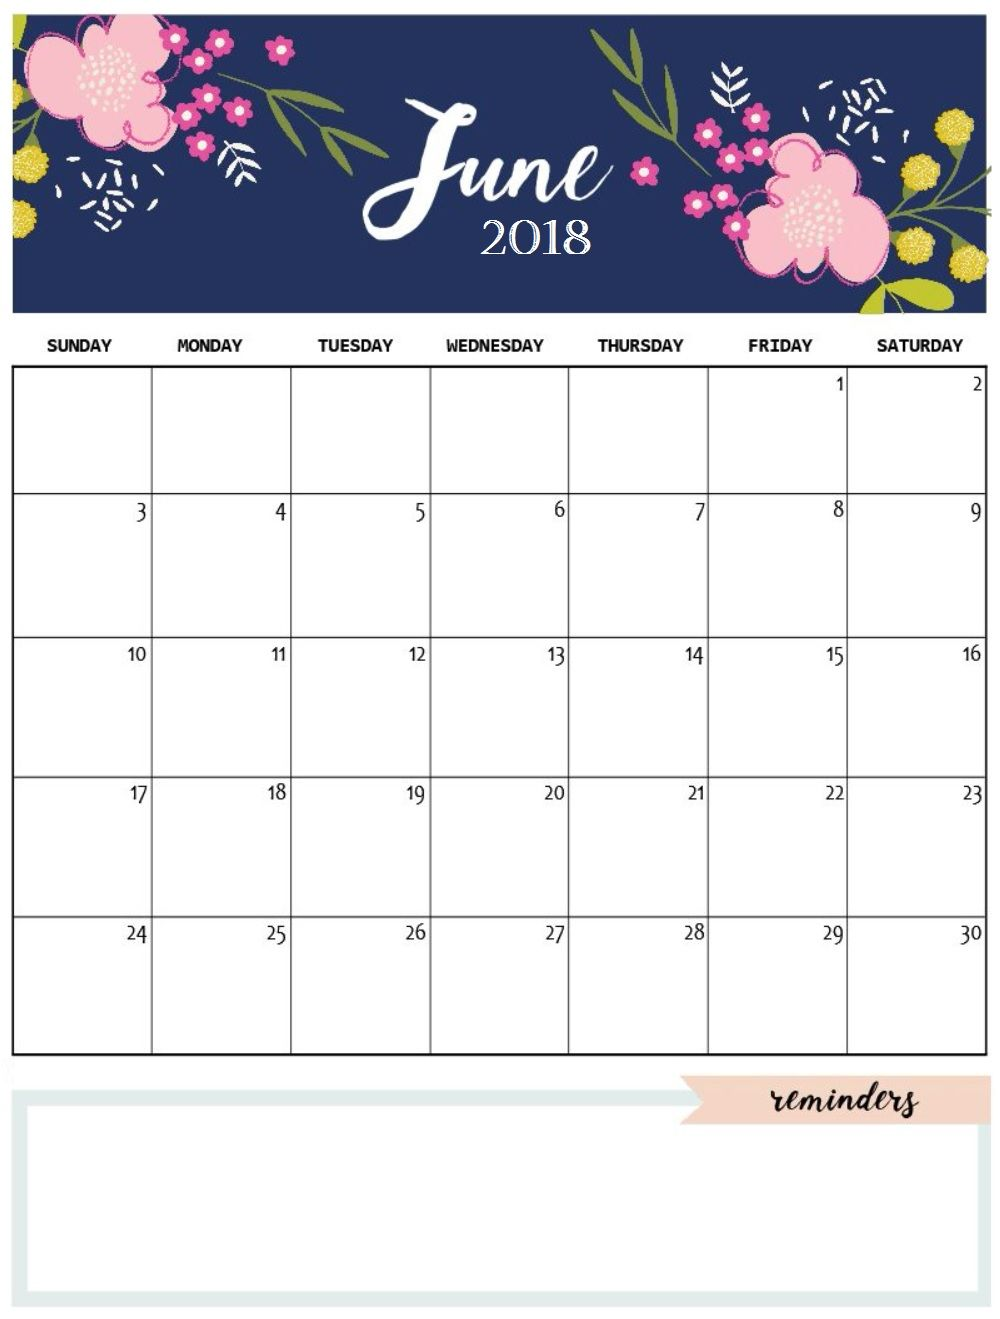 June Calendar Picture Ideas : Cute june calendar template calendars pinterest